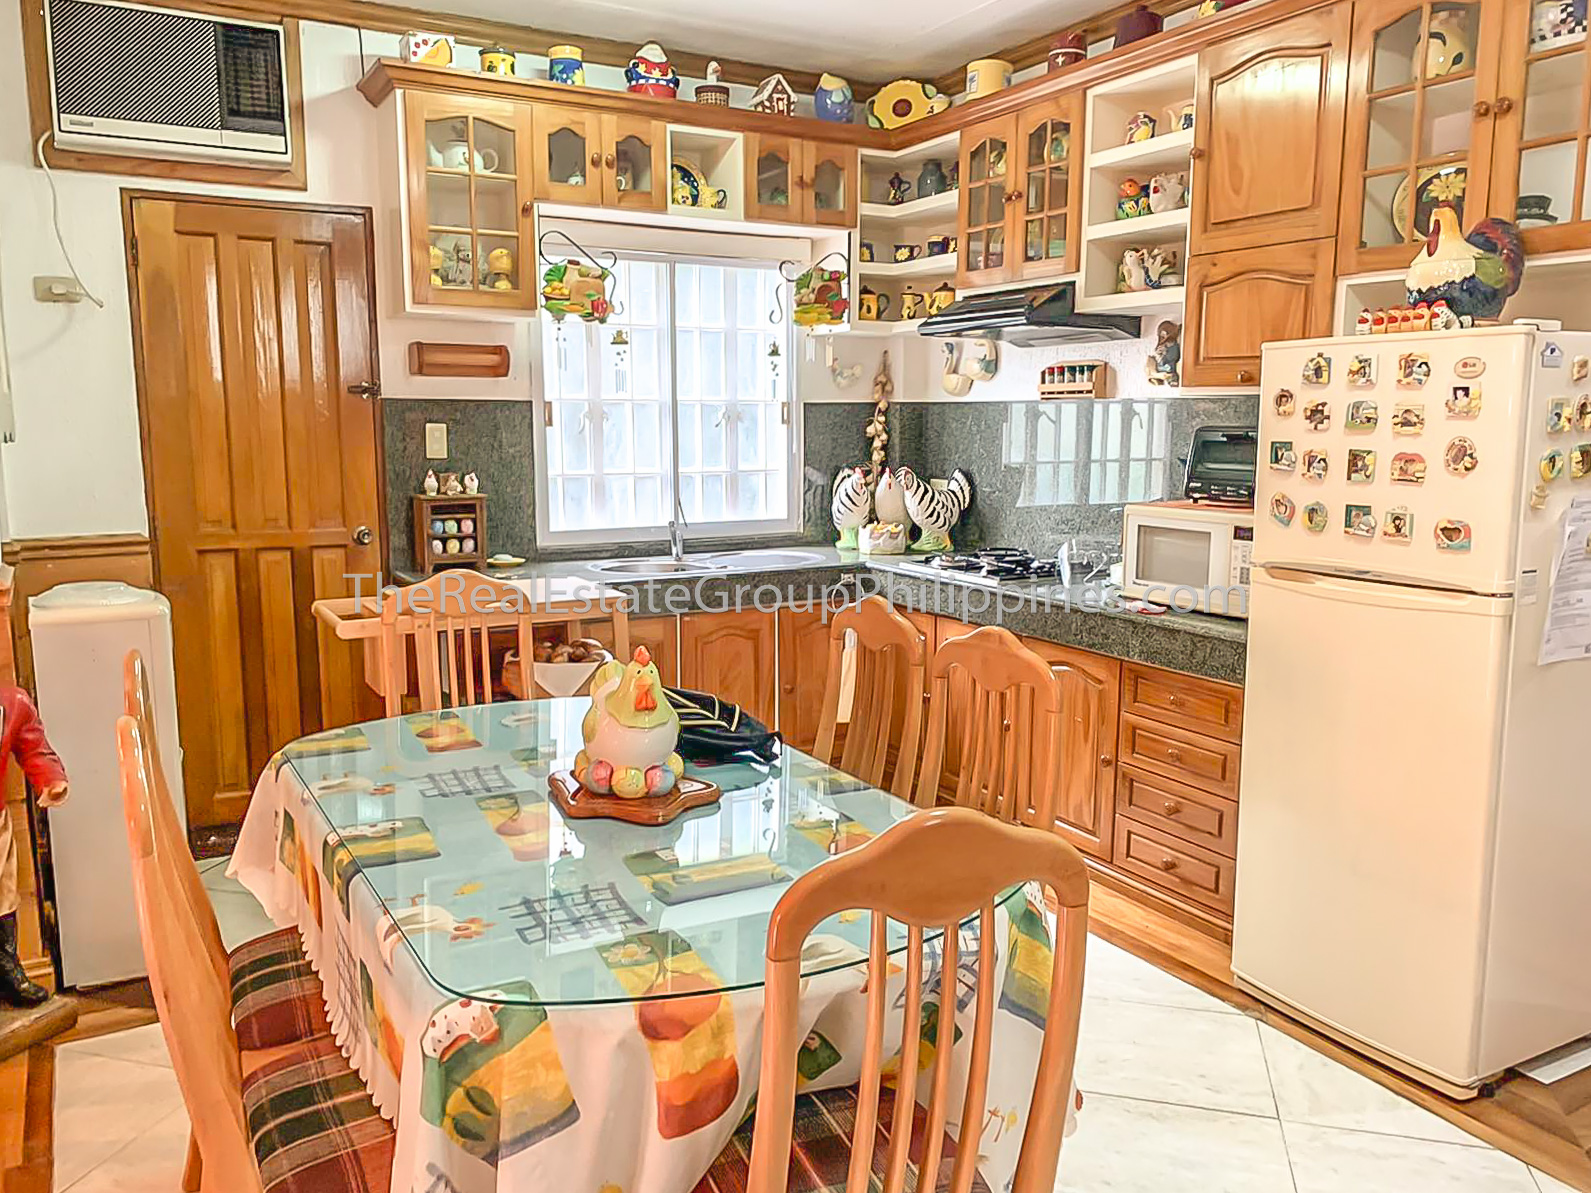 4BR House For Sale, Monte Vista Subdivision, Tagaytay-9